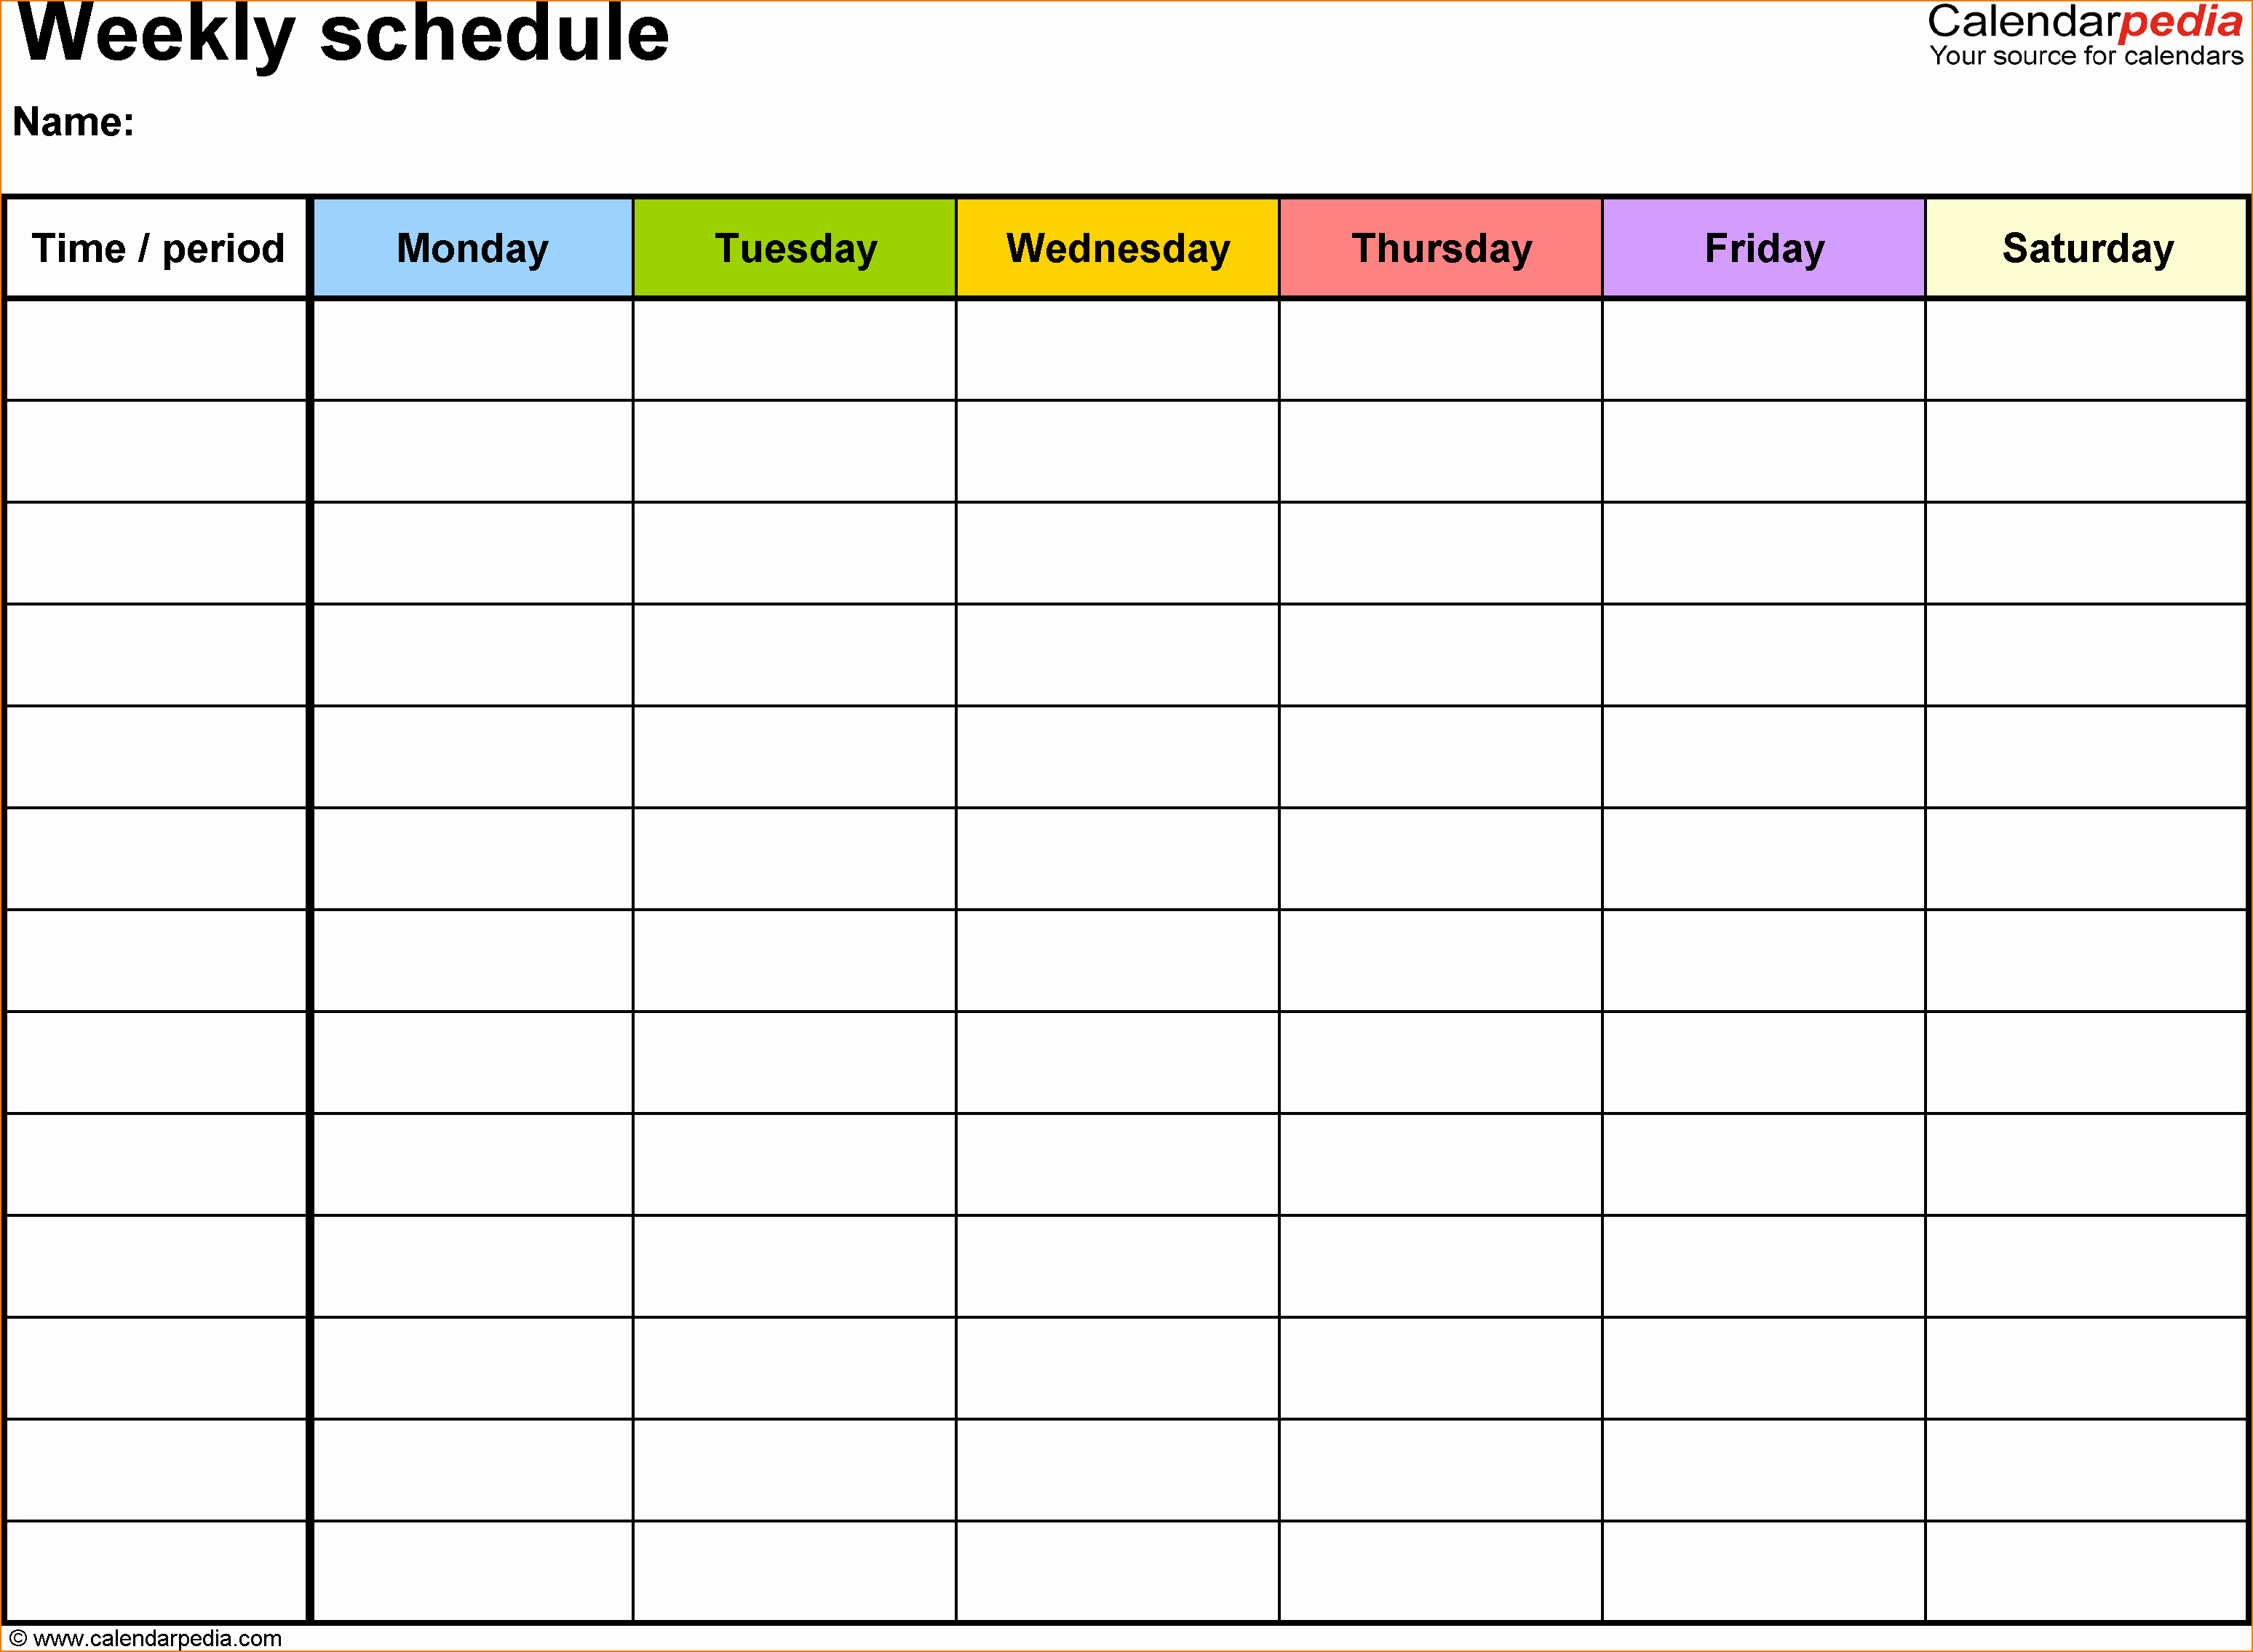 Daily Schedule Template Pdf Beautiful 5 Daily Schedule Template Pdf